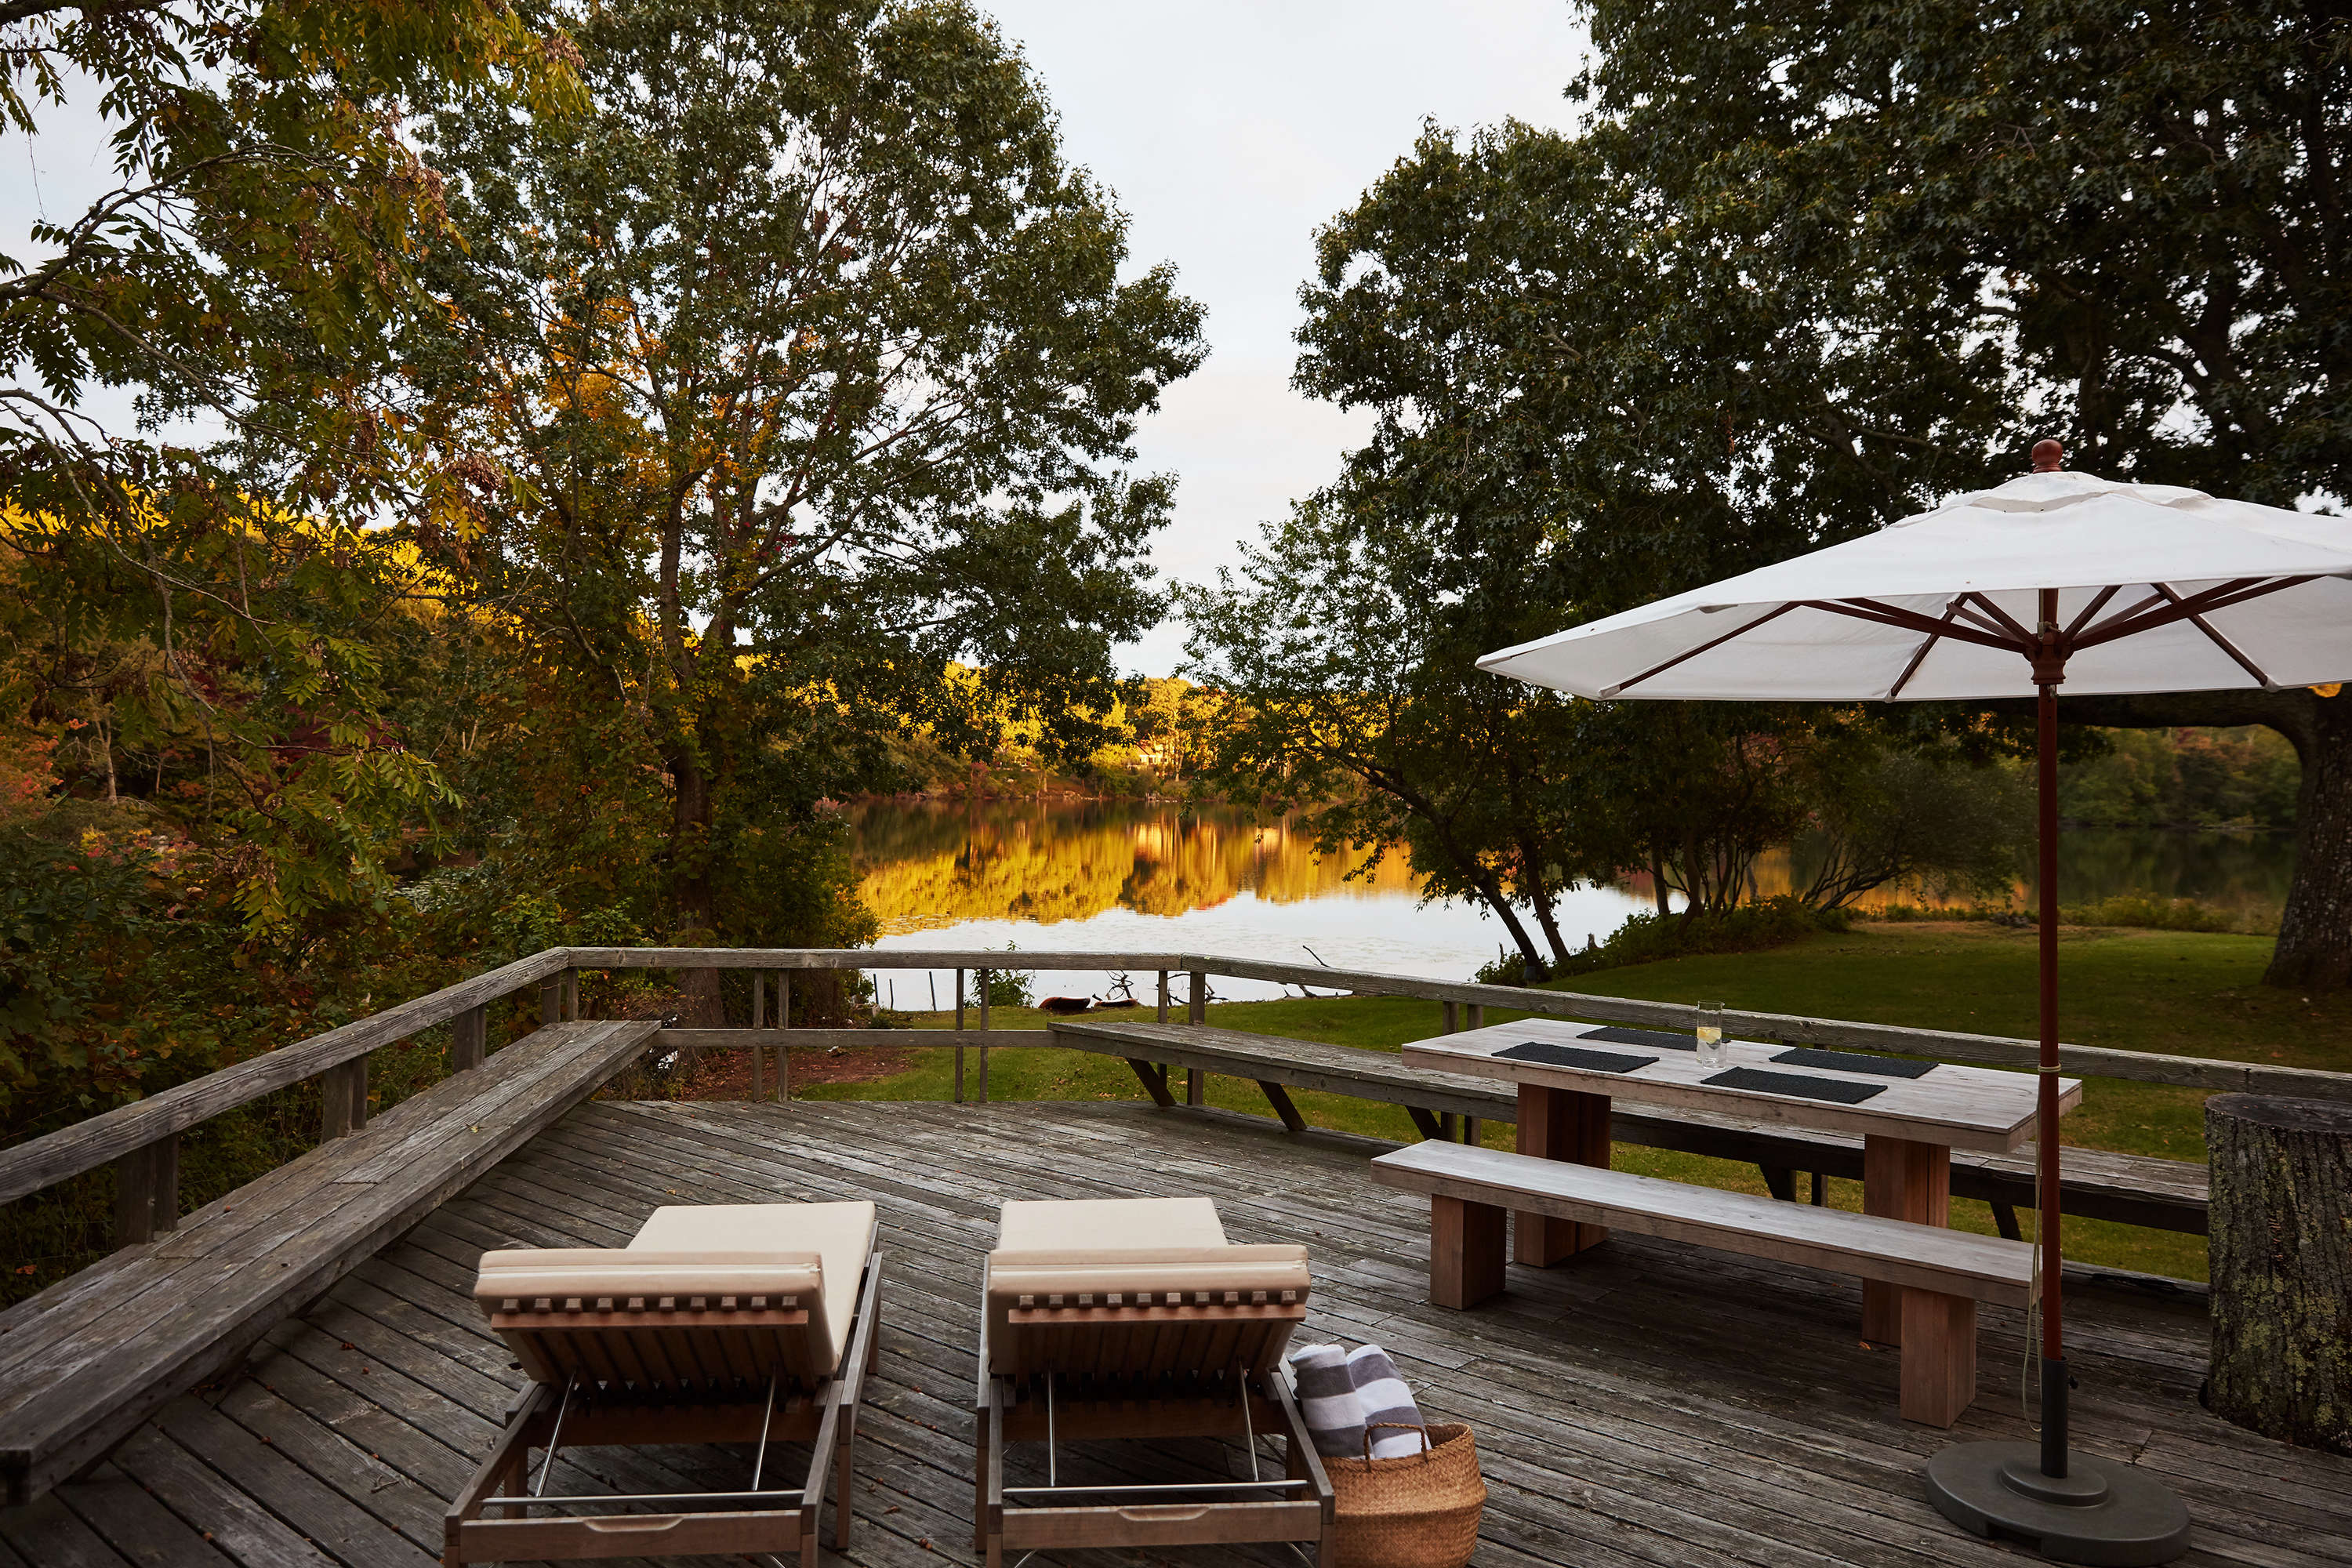 Jones kept the original weathered deck overlooking the lake, but added a two cream chaises fromSkagerak(a similar option is available here),and a Vietnamese rice basket, ideal for carrying lakeside essentials, from Lantern Moon.